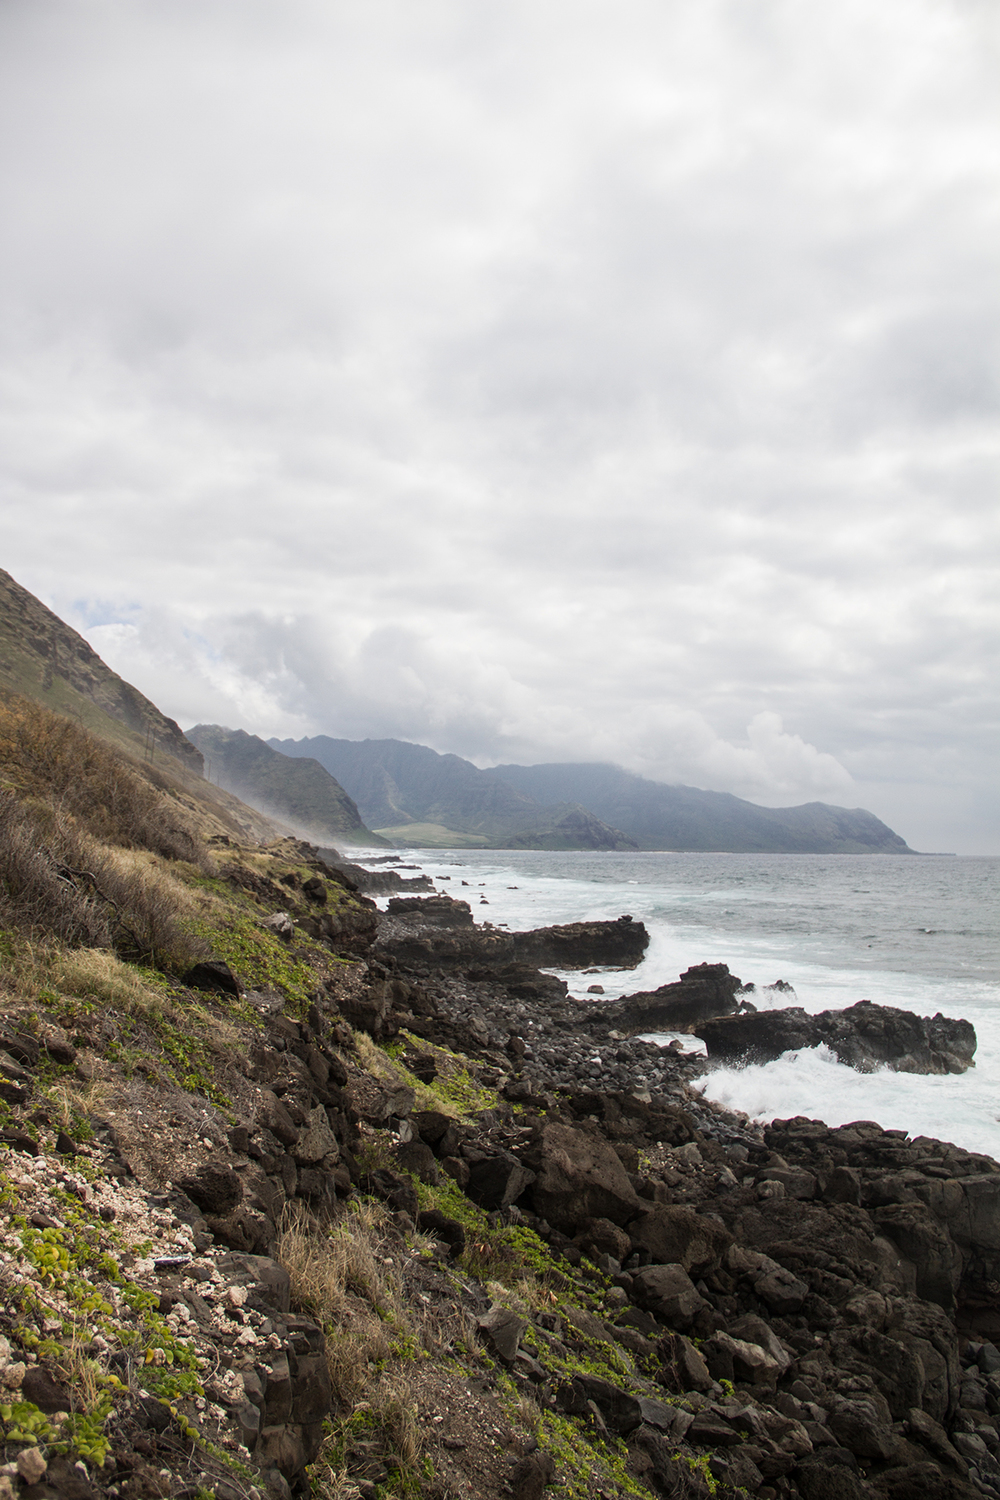 Along the Kaena Point Trail, on the northwestern tip of Oahu.